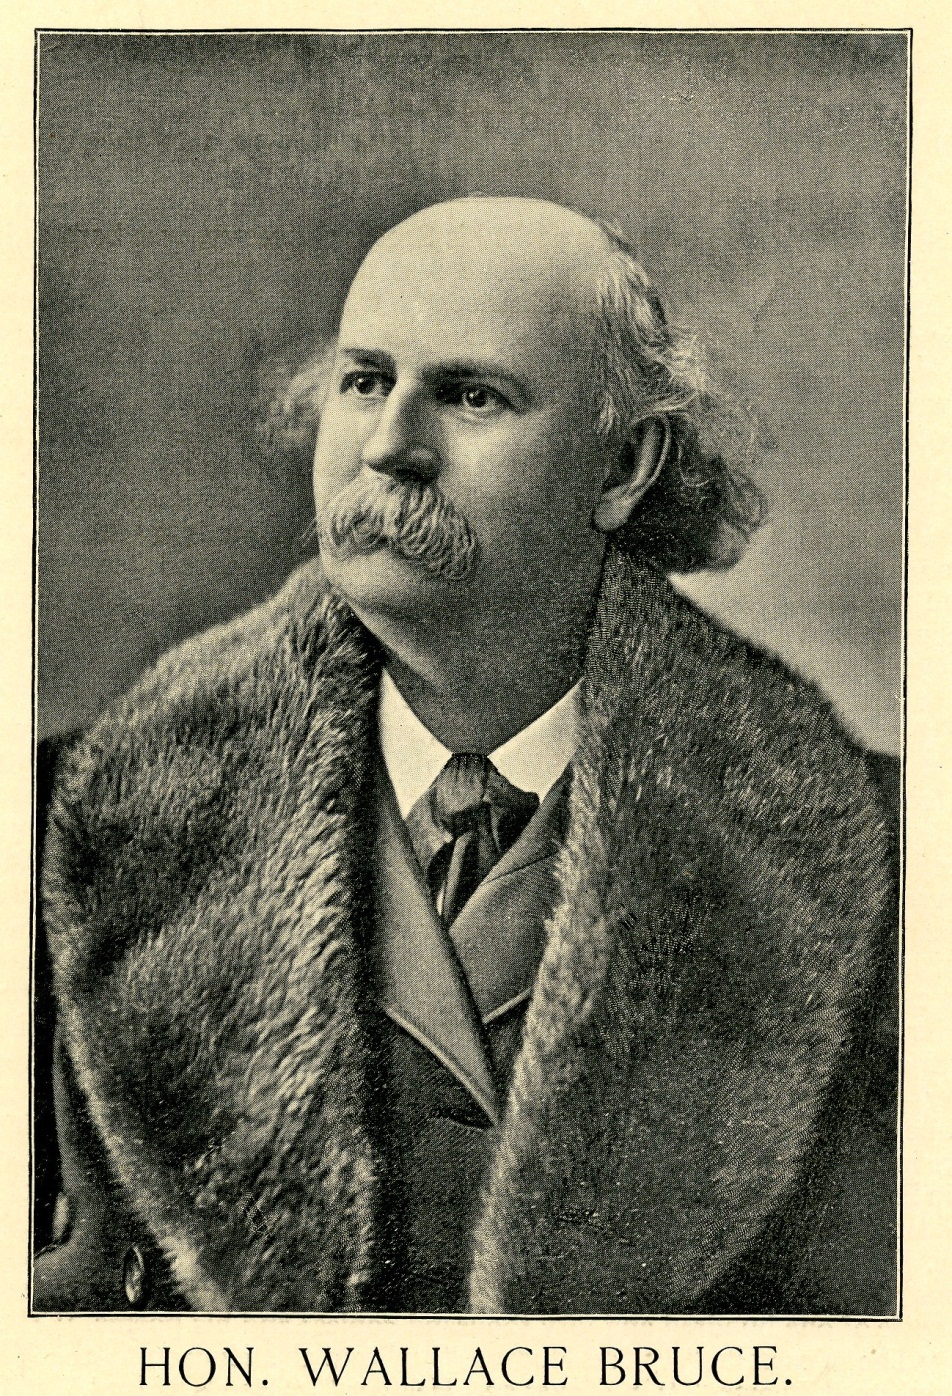 Portrait of a man with balding head and thick mustache